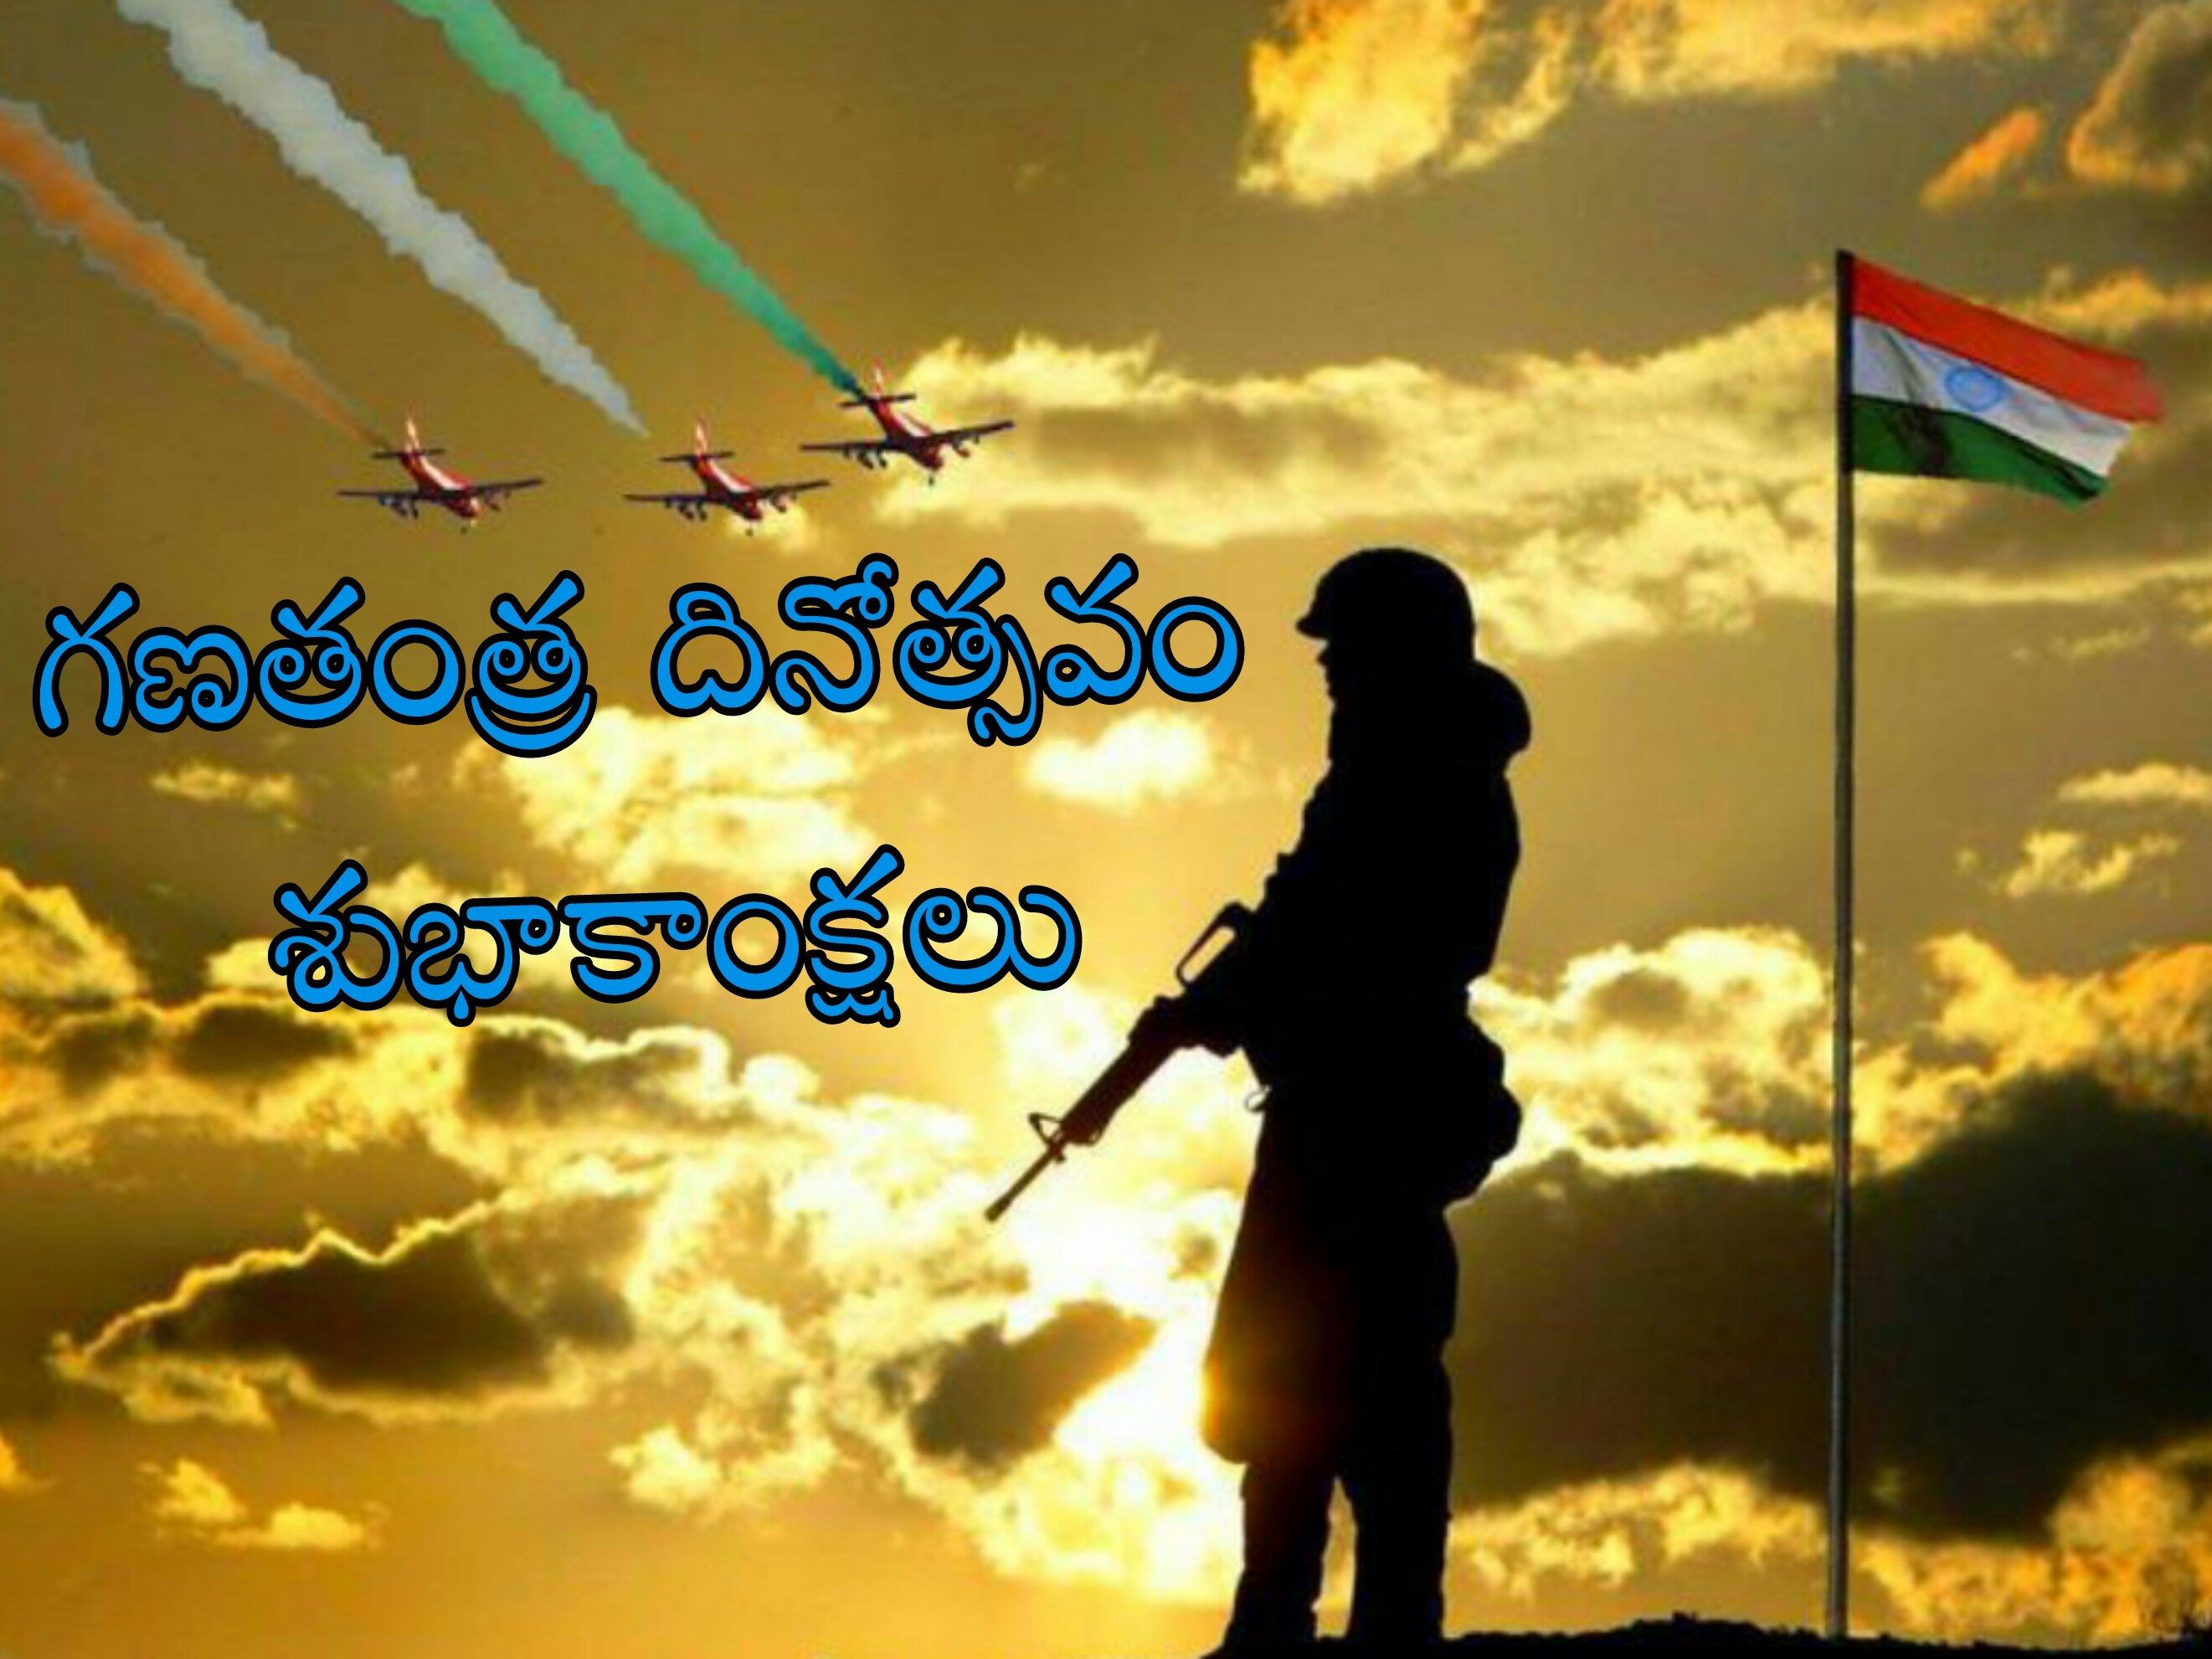 Pin By Kumari On Morning Images In 2021 Republic Day Picture Quotes Quotes For Whatsapp